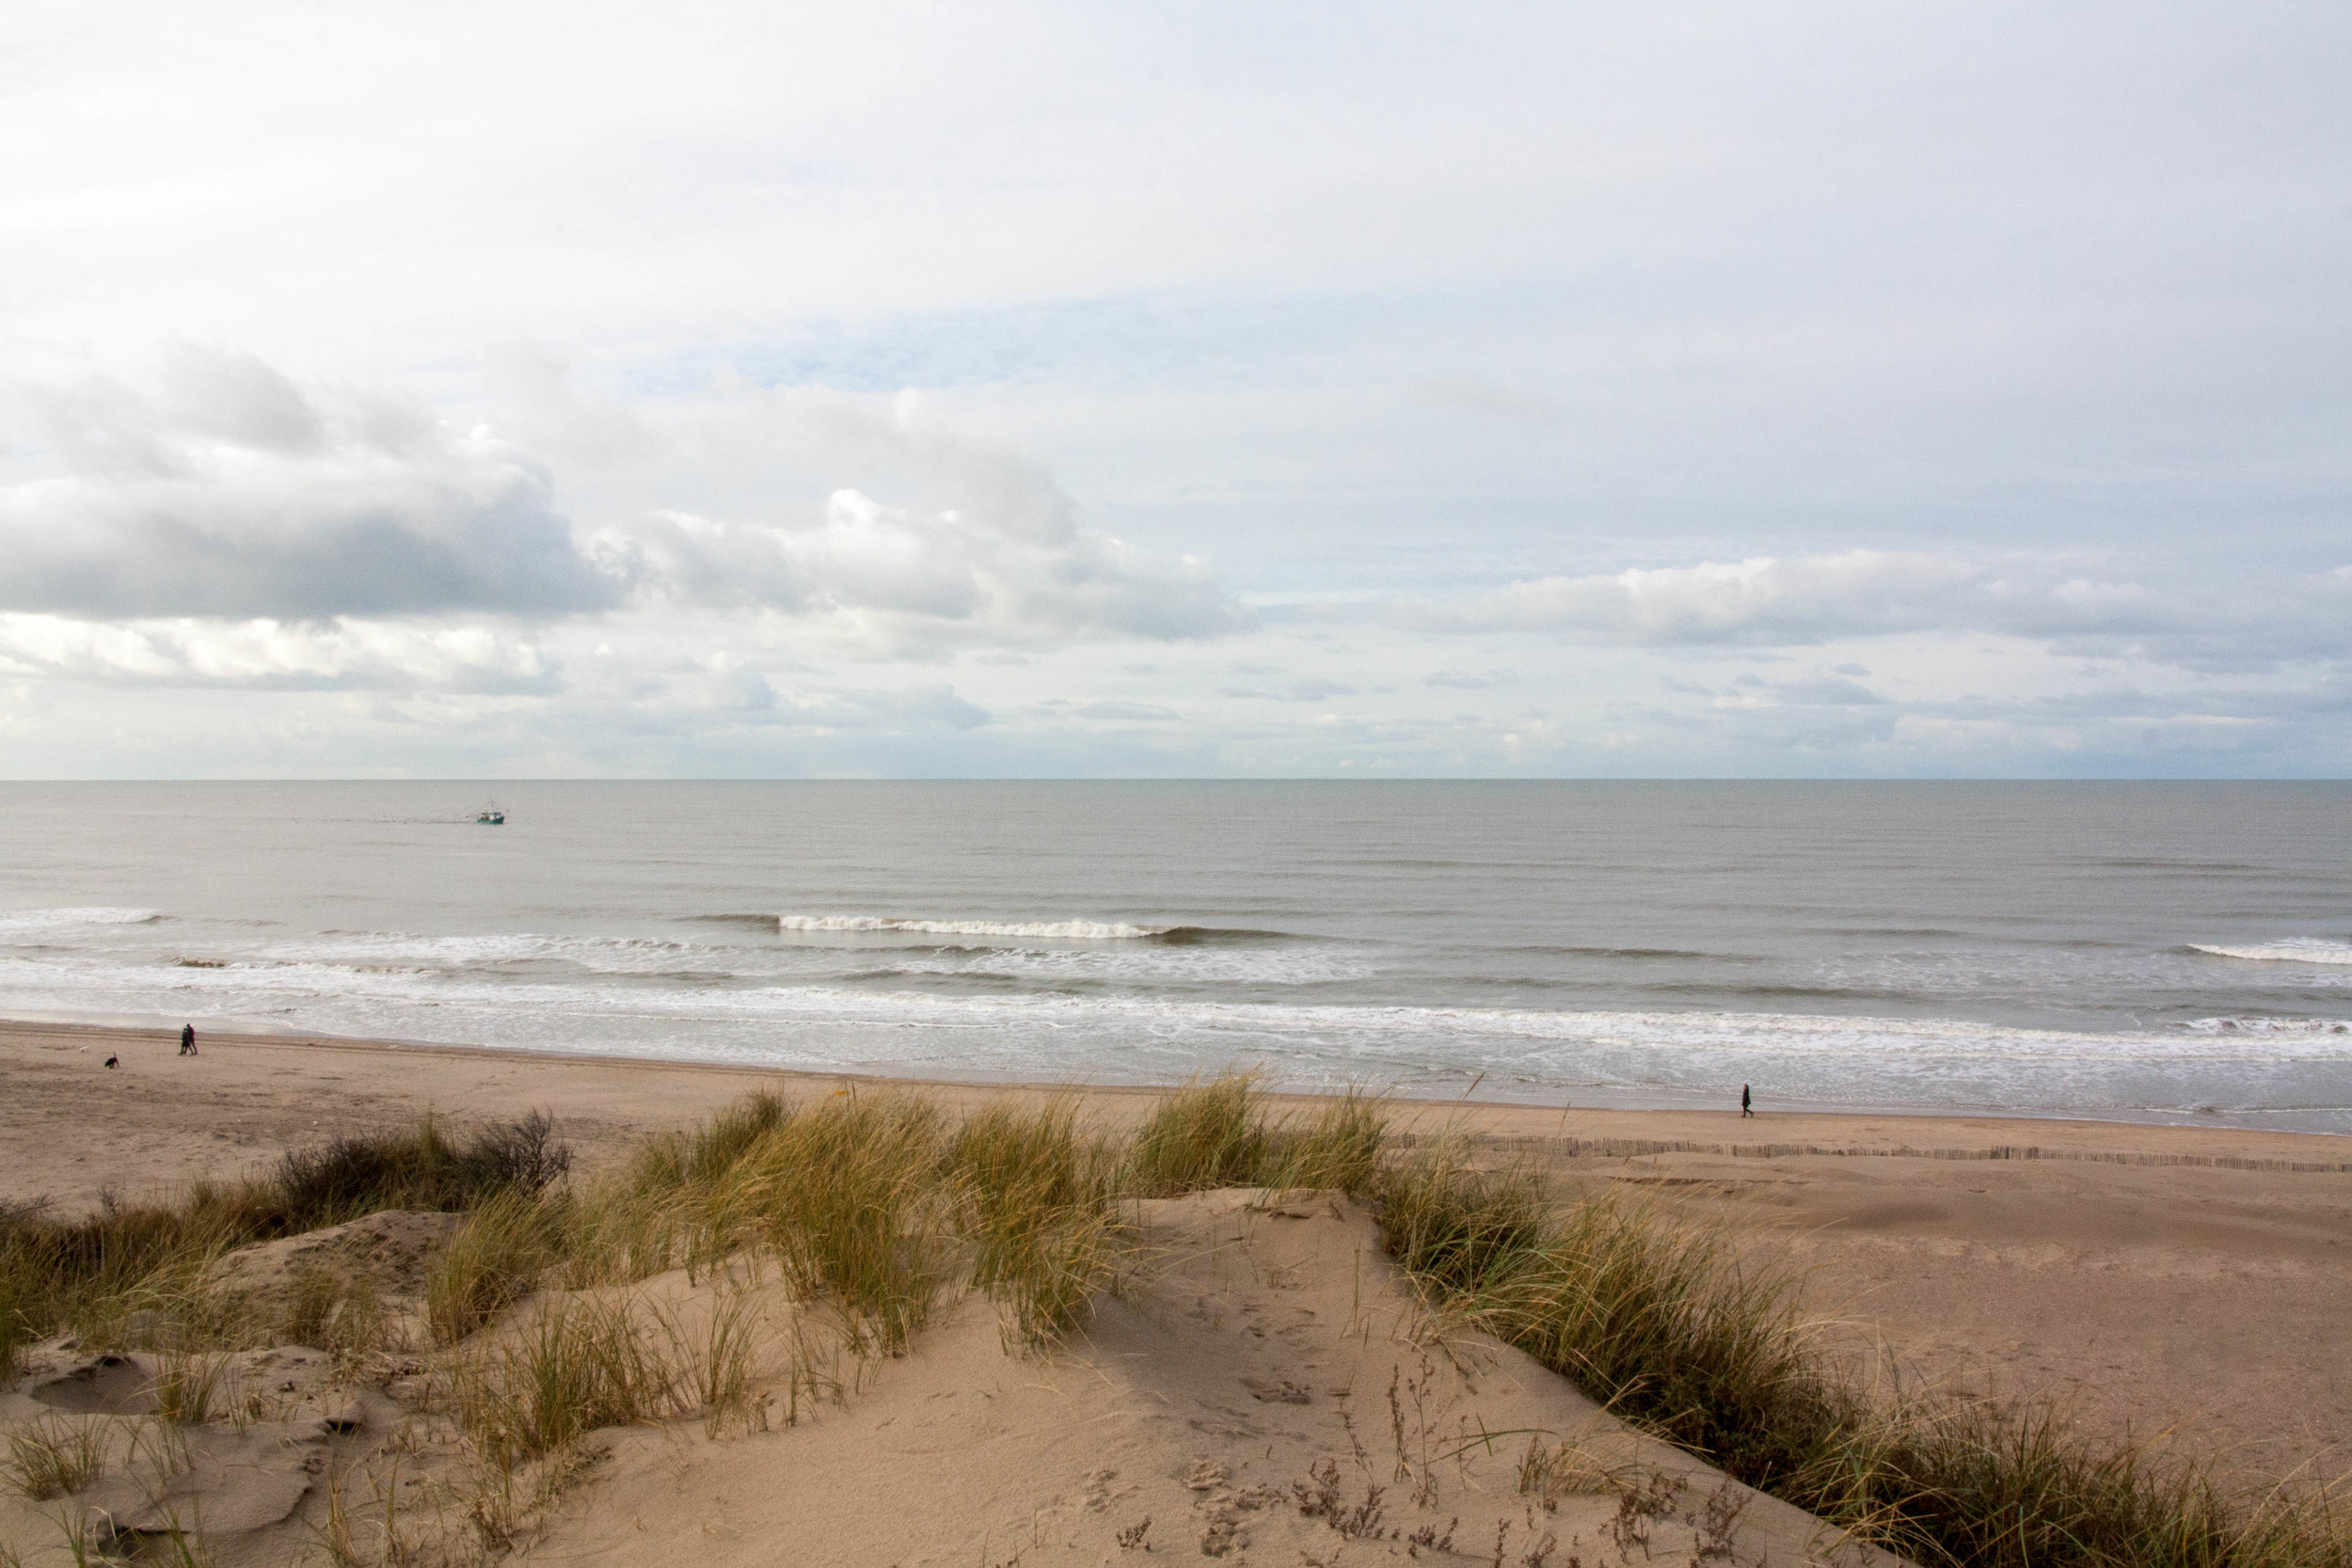 View of the North Sea from atop a sand dune